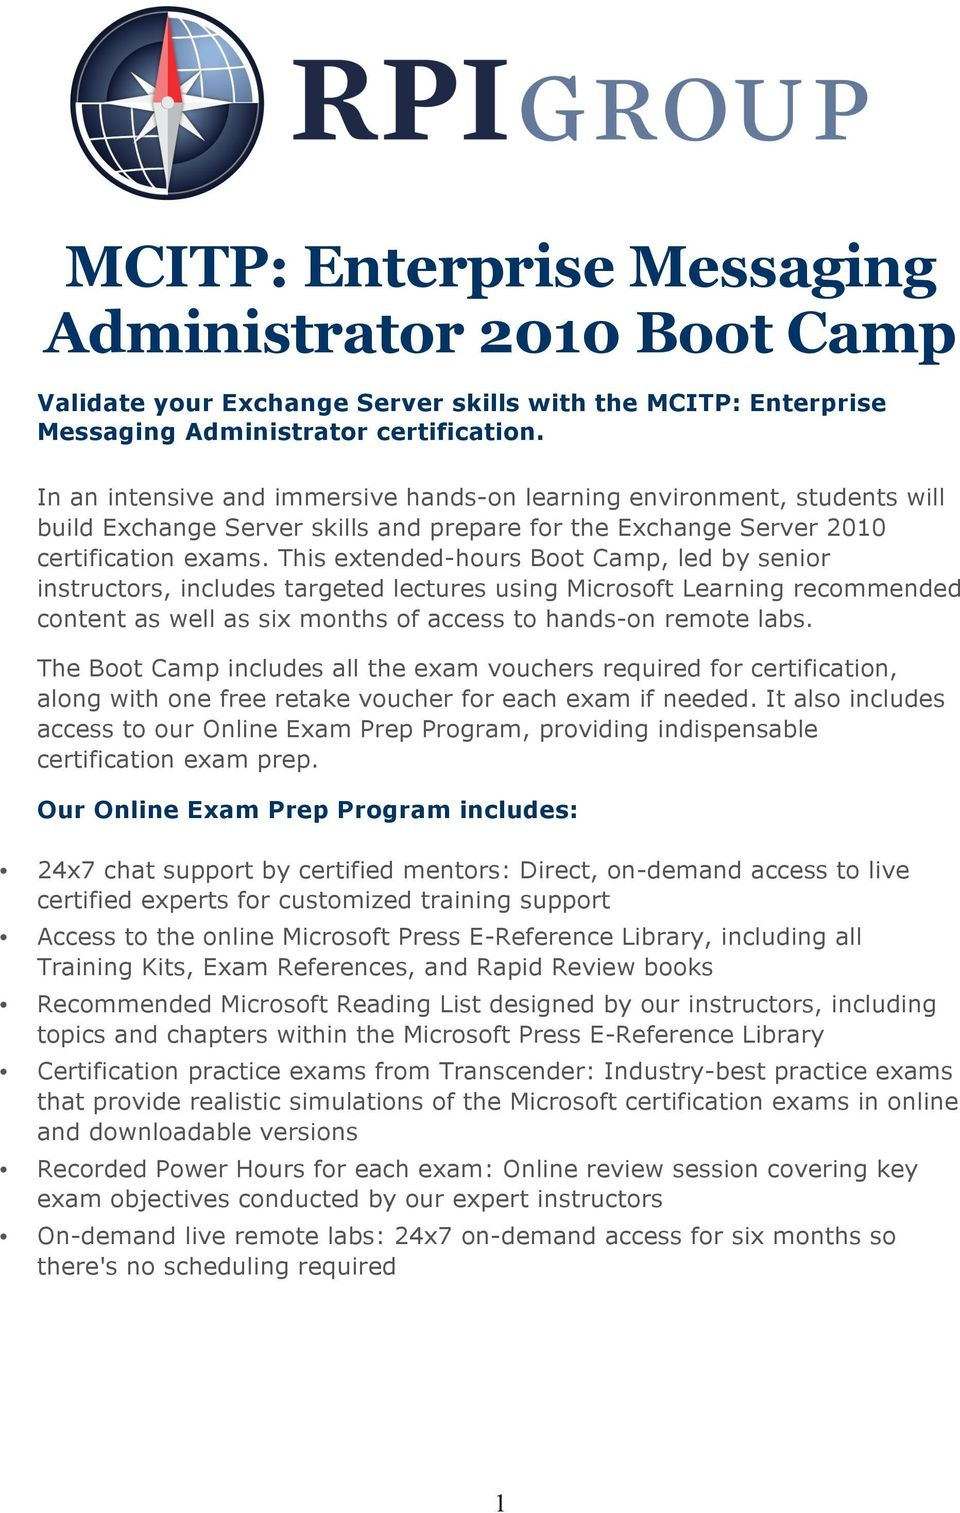 This extended-hours Boot Camp, led by senior instructors, includes targeted lectures using Microsoft Learning recommended content as well as six months of access to hands-on remote labs.